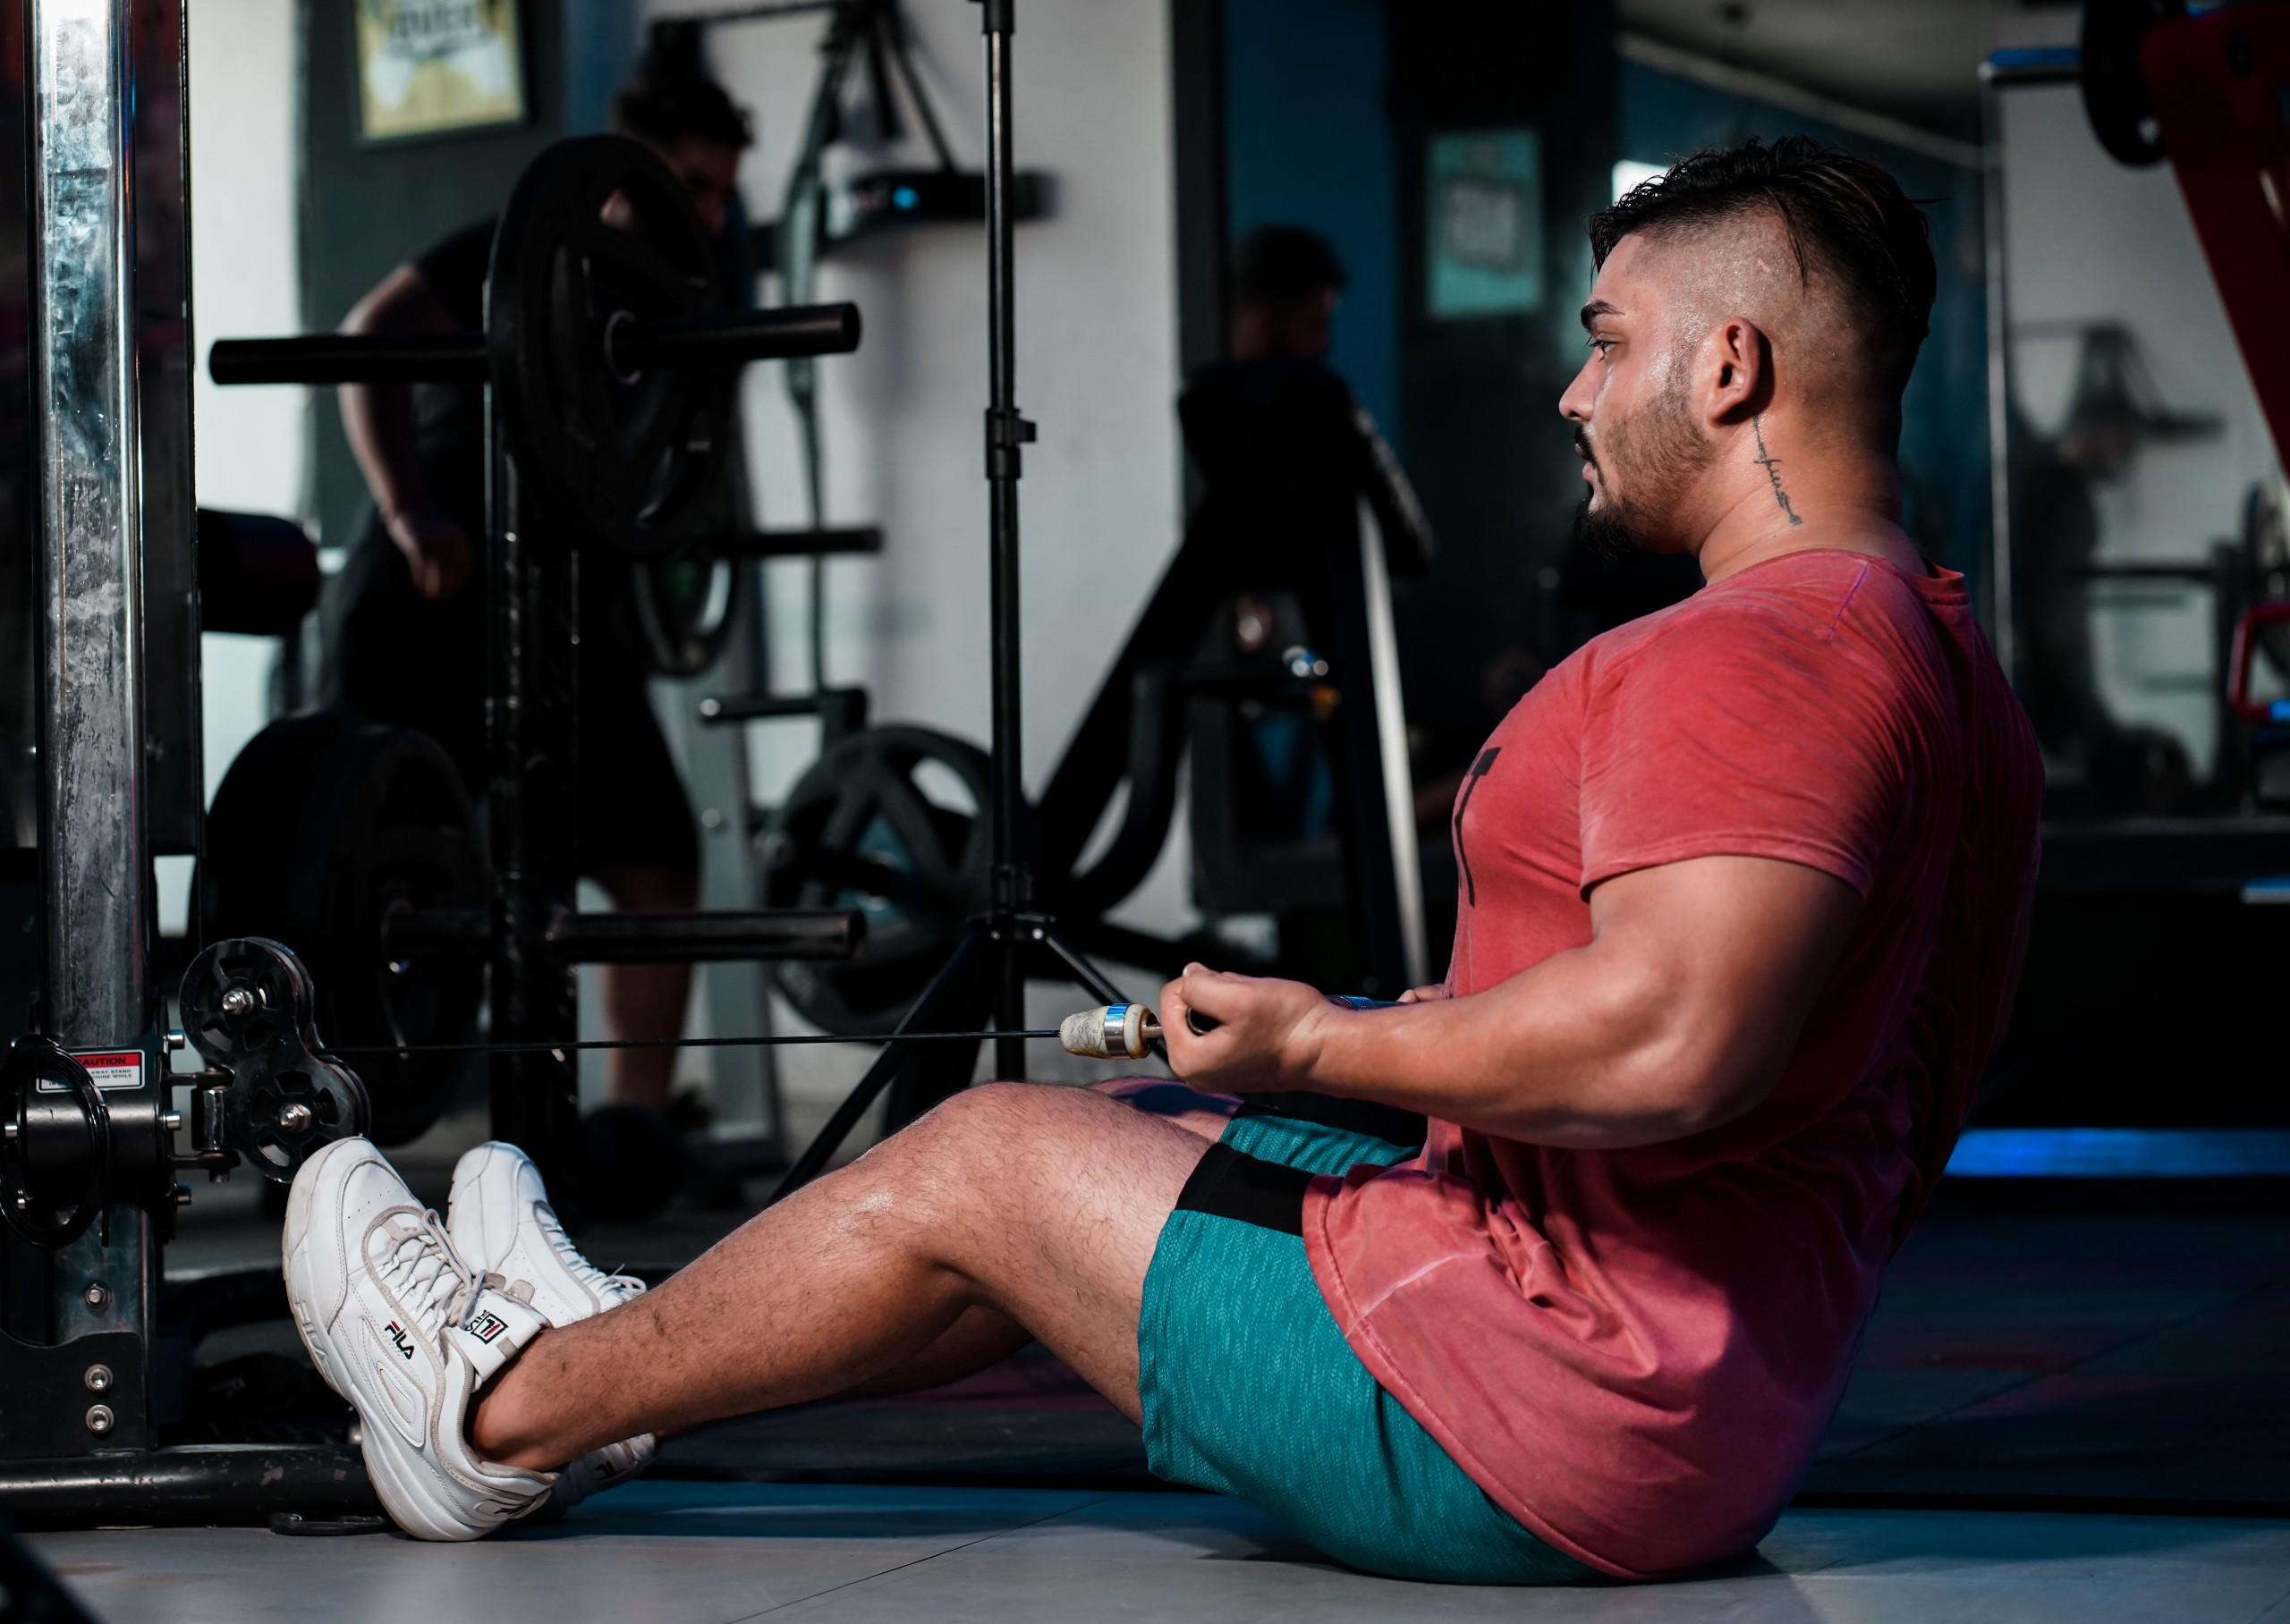 Strong muscles man pulling weights with arms in gym